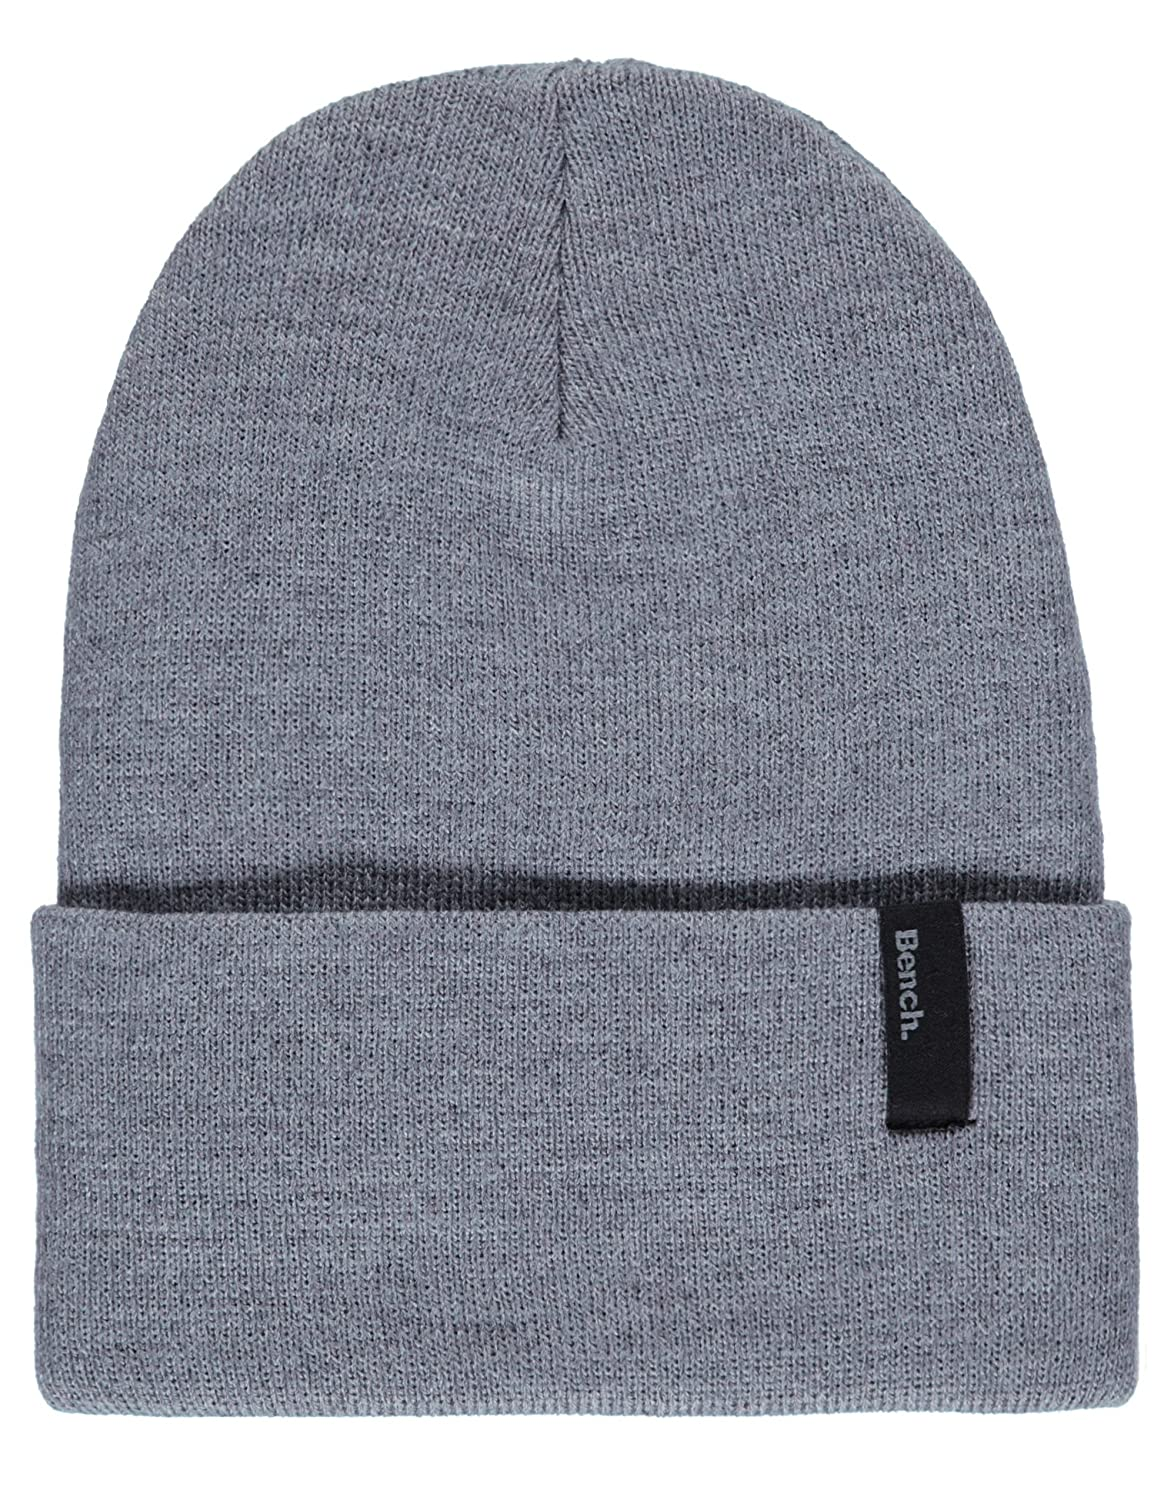 Bench Haube Strickmütze Beanie amazon